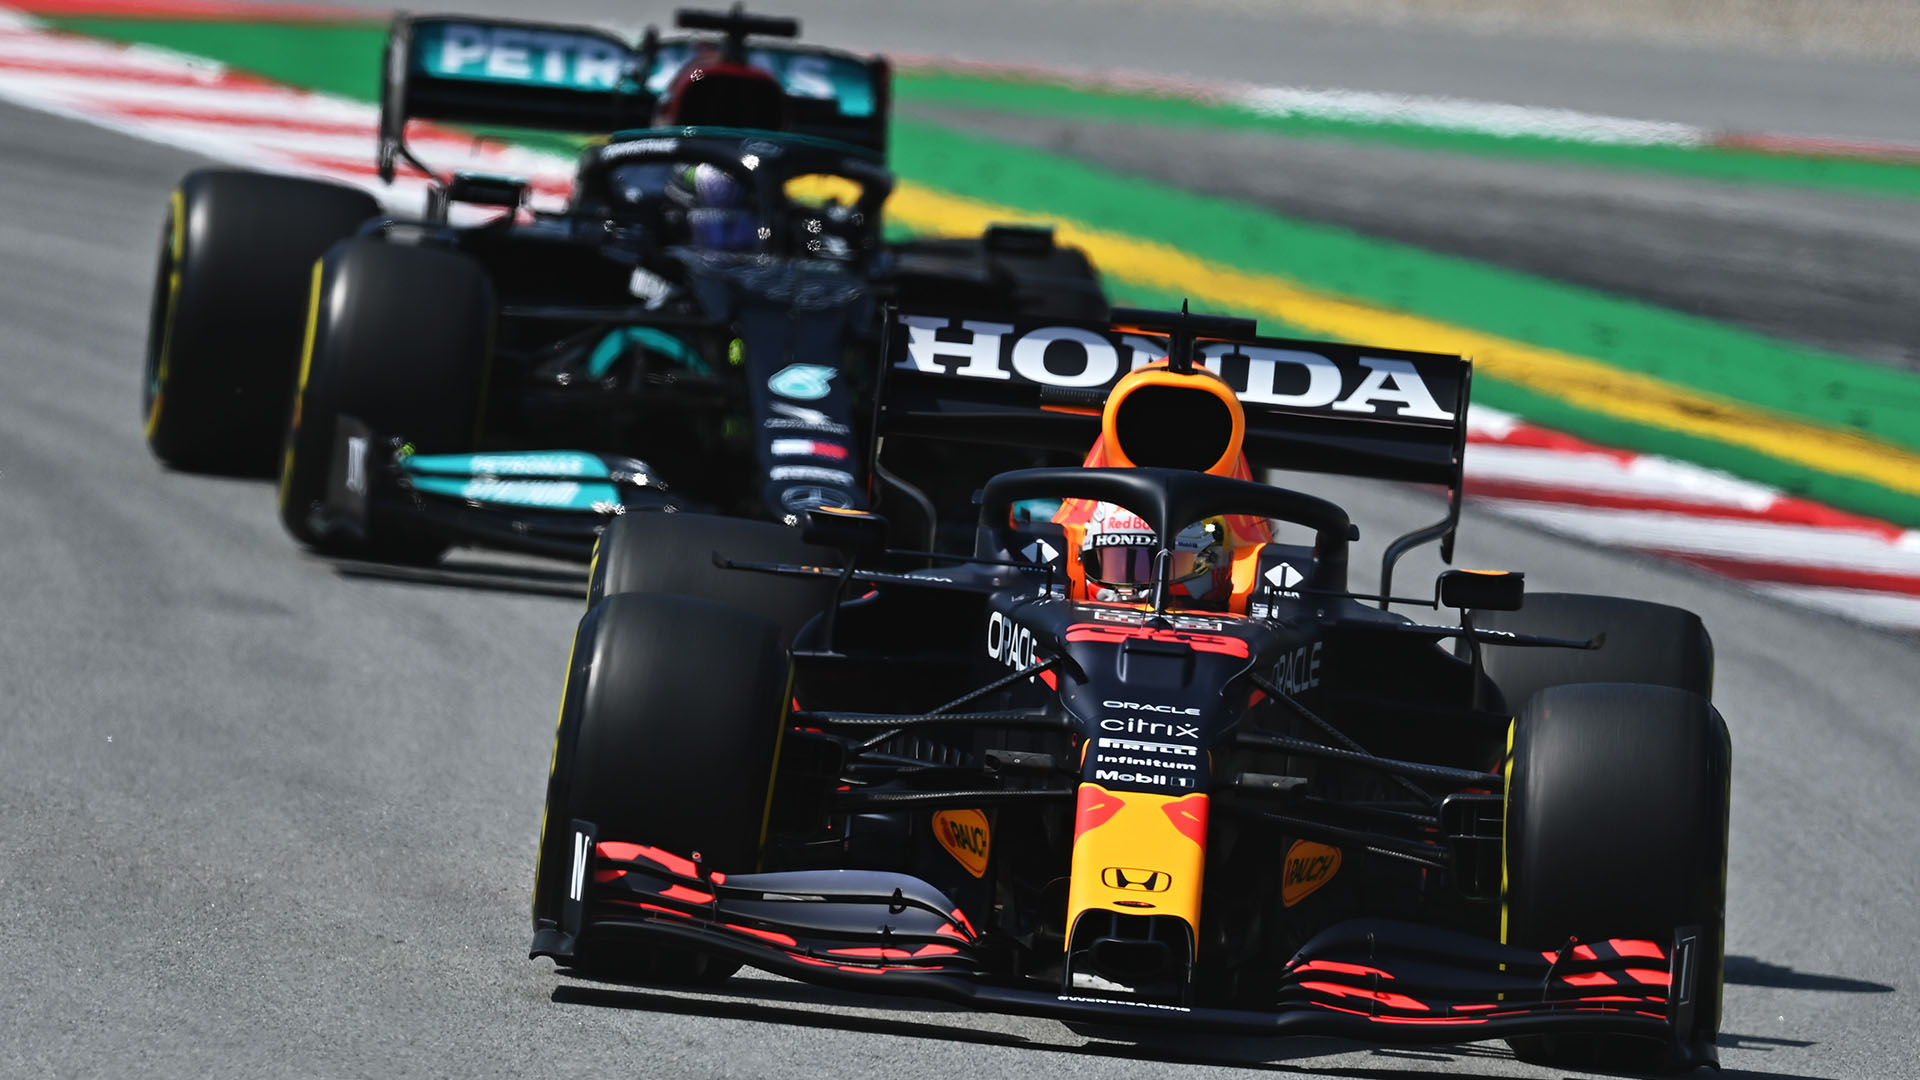 5 things we learned from Friday practice for the Spanish Grand Prix - Formula 1 RSS UK